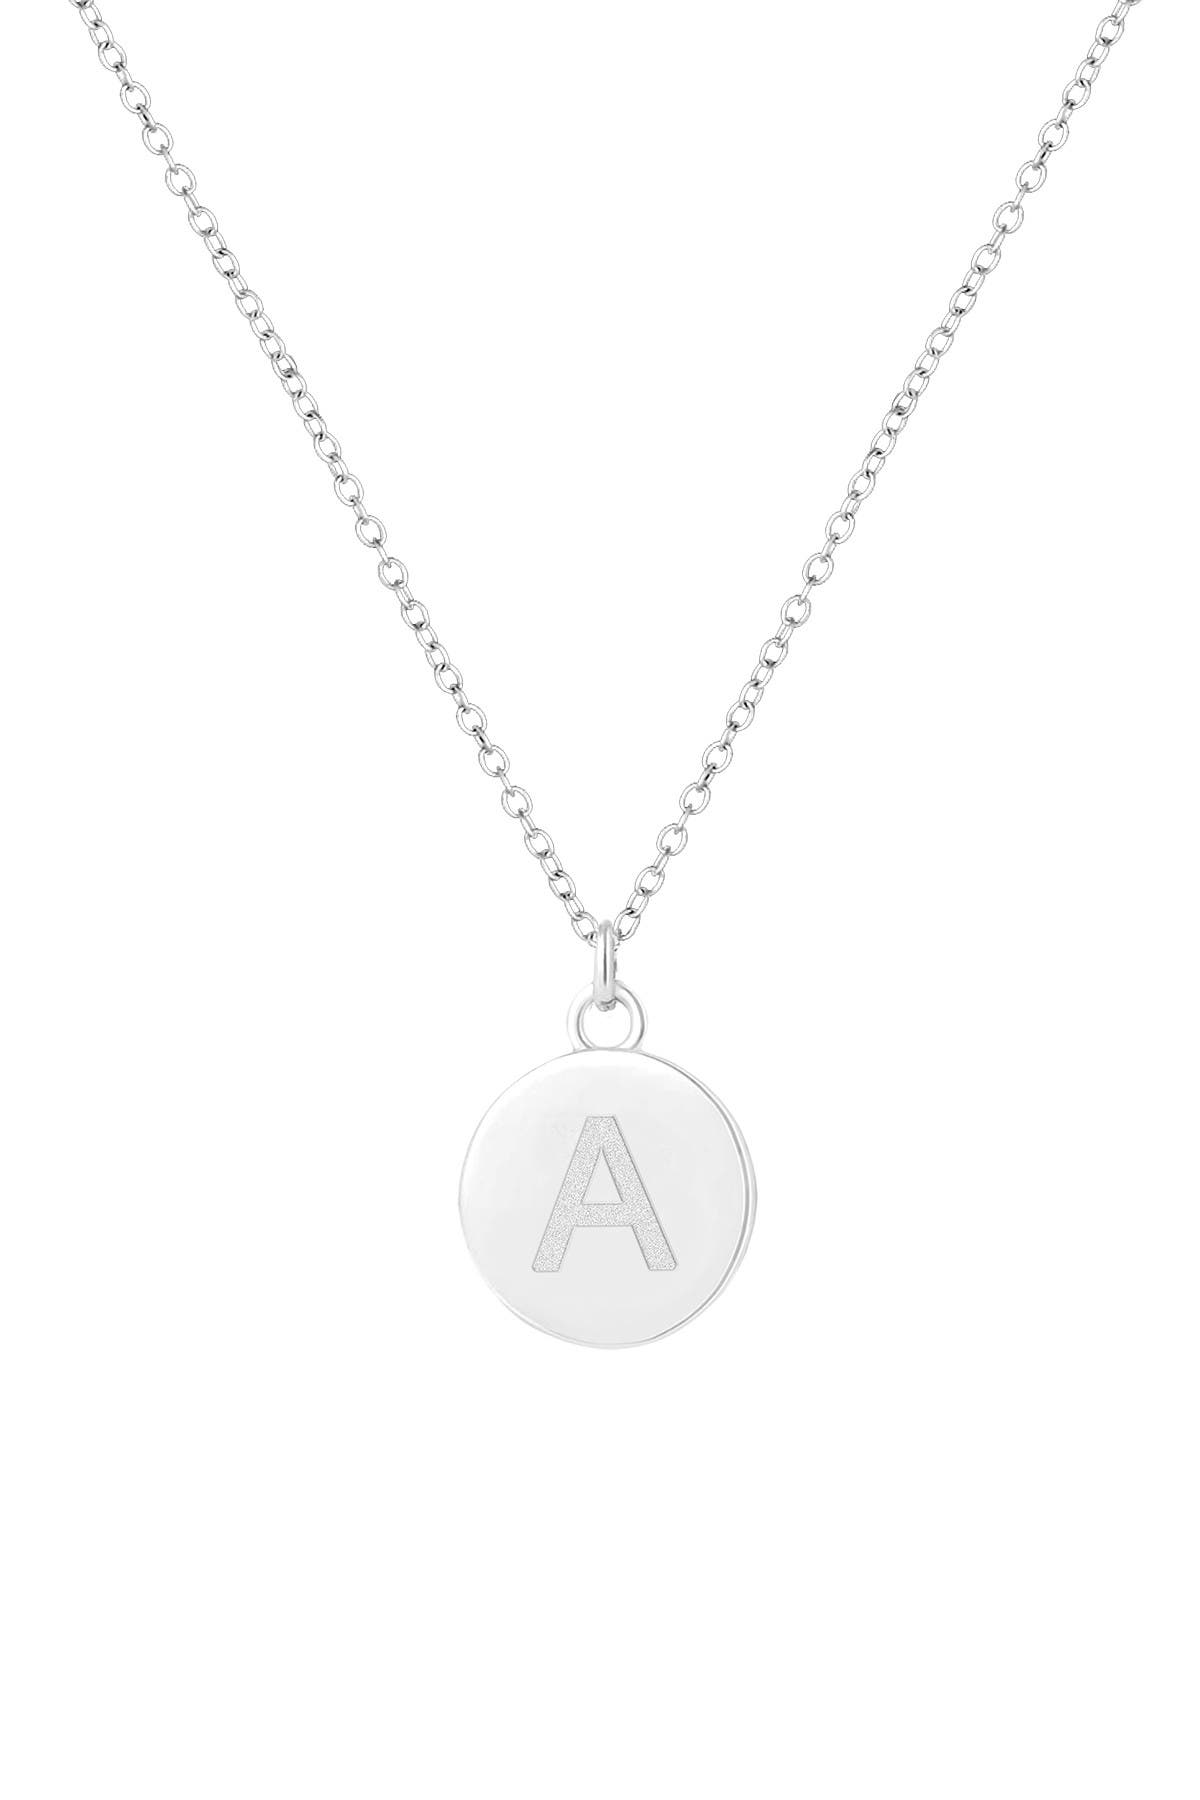 Image of Savvy Cie Sterling Silver 12mm Initial Pendant Necklace